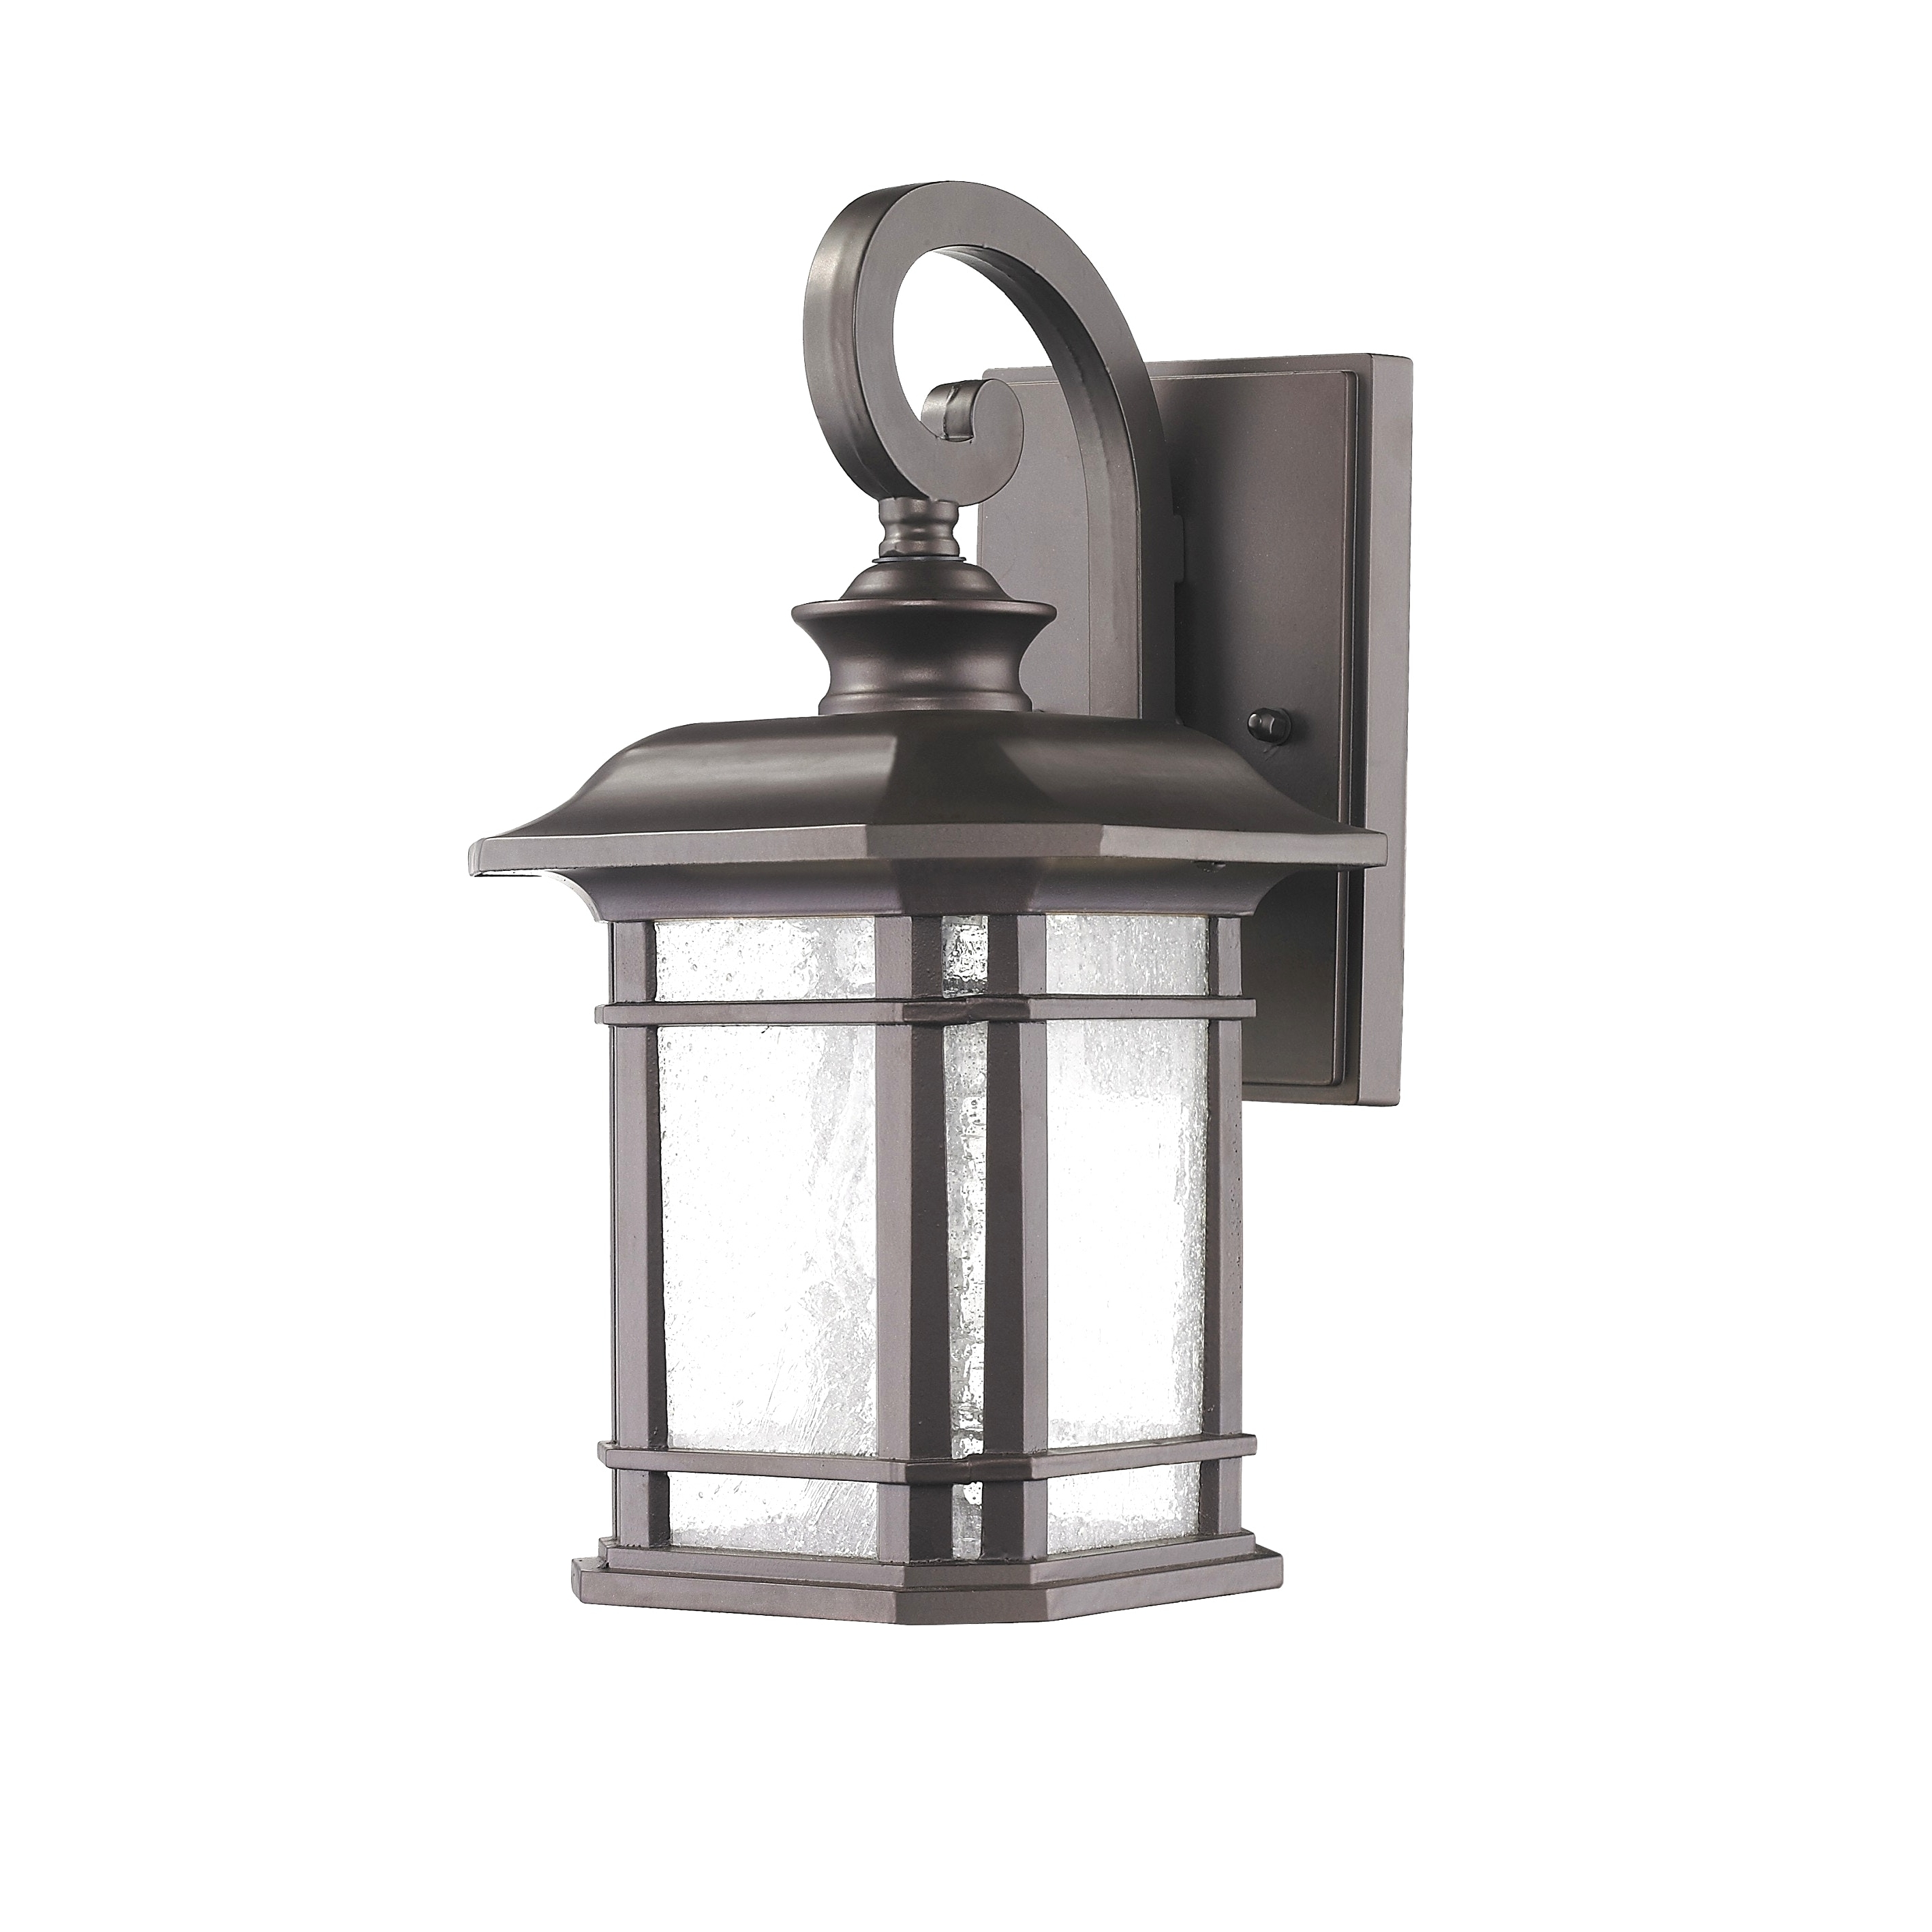 Modern Outdoor Solar Lights At Wayfair With Regard To Famous Wayfair Wall Lights (View 8 of 20)